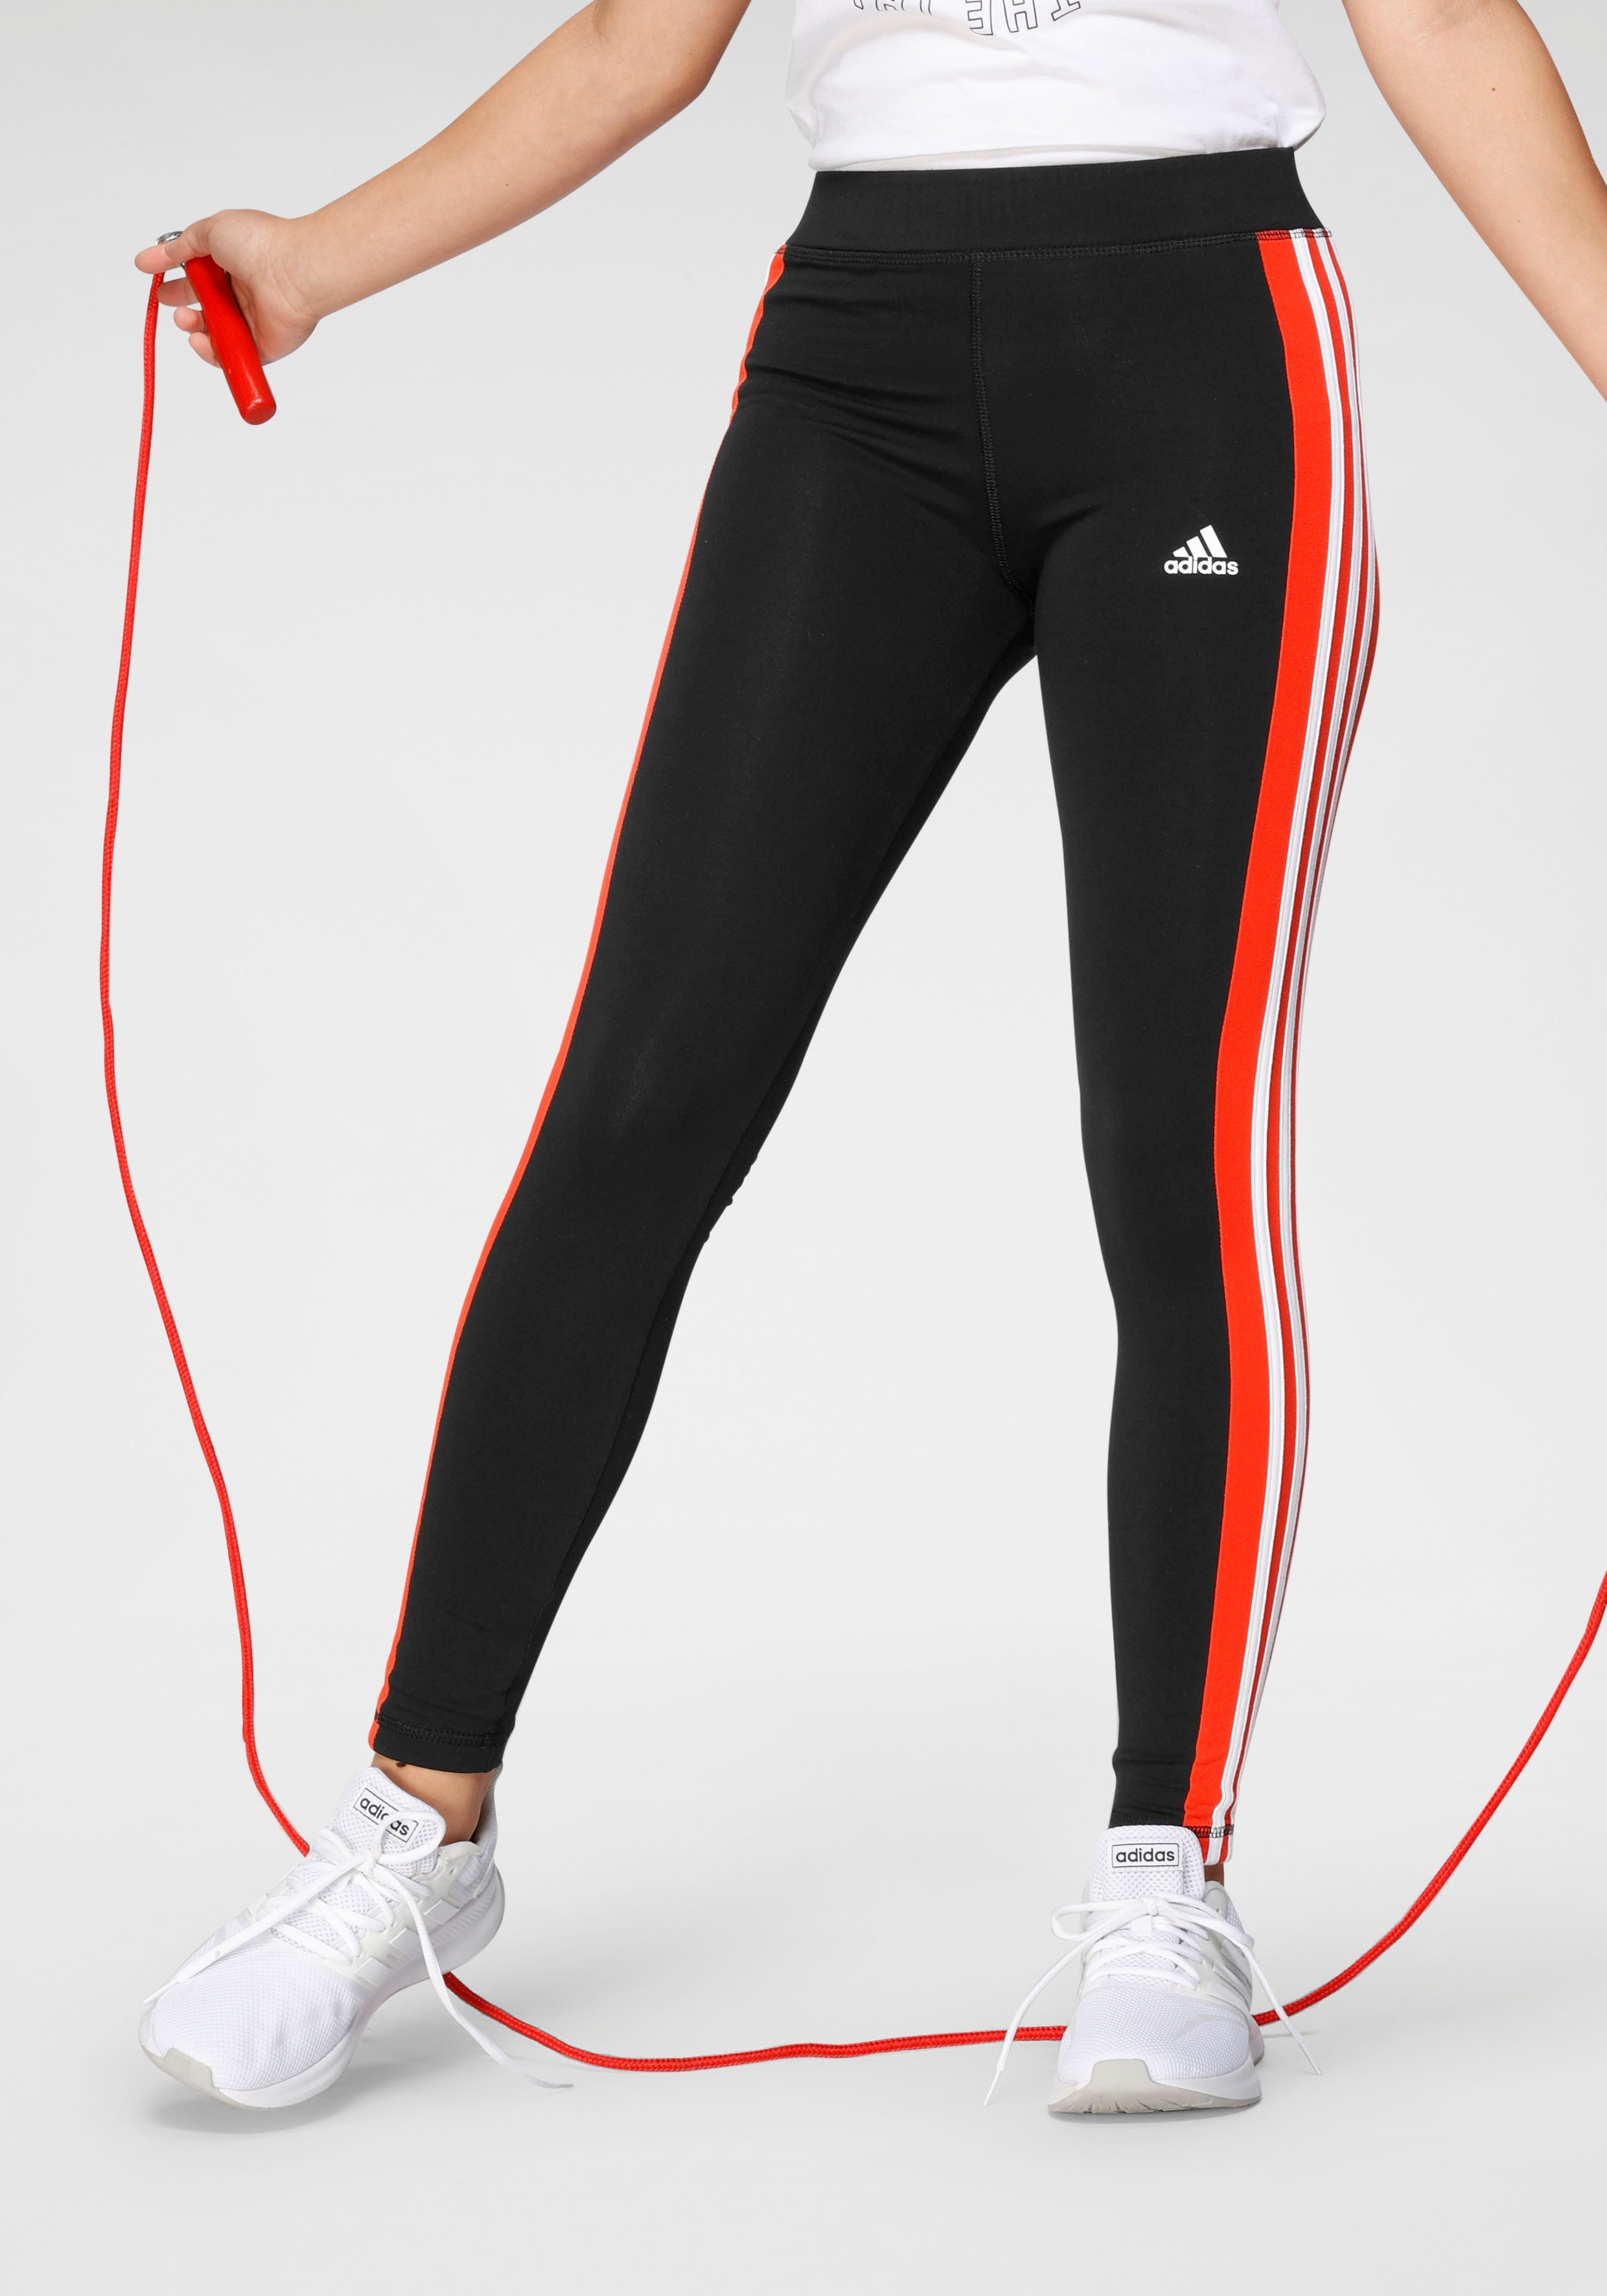 adidas Performance legging »YOUTH GIRL LINEAR 3 STRIPES TIGHT« online kopen op otto.nl